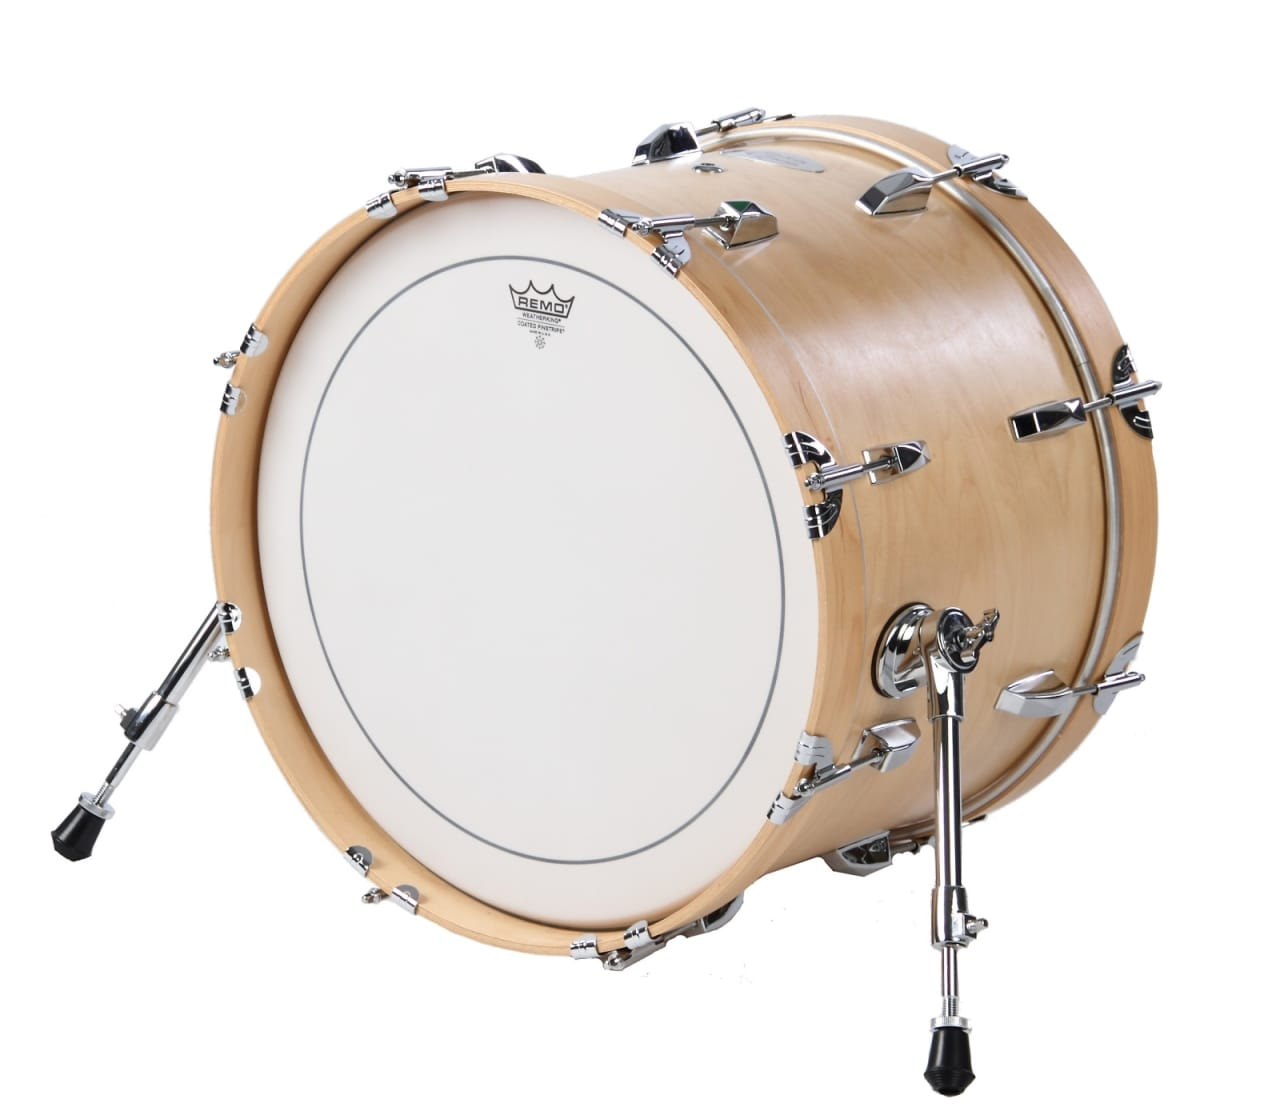 travel bass drum 12 x 18 by side kick drums maple finish reverb. Black Bedroom Furniture Sets. Home Design Ideas